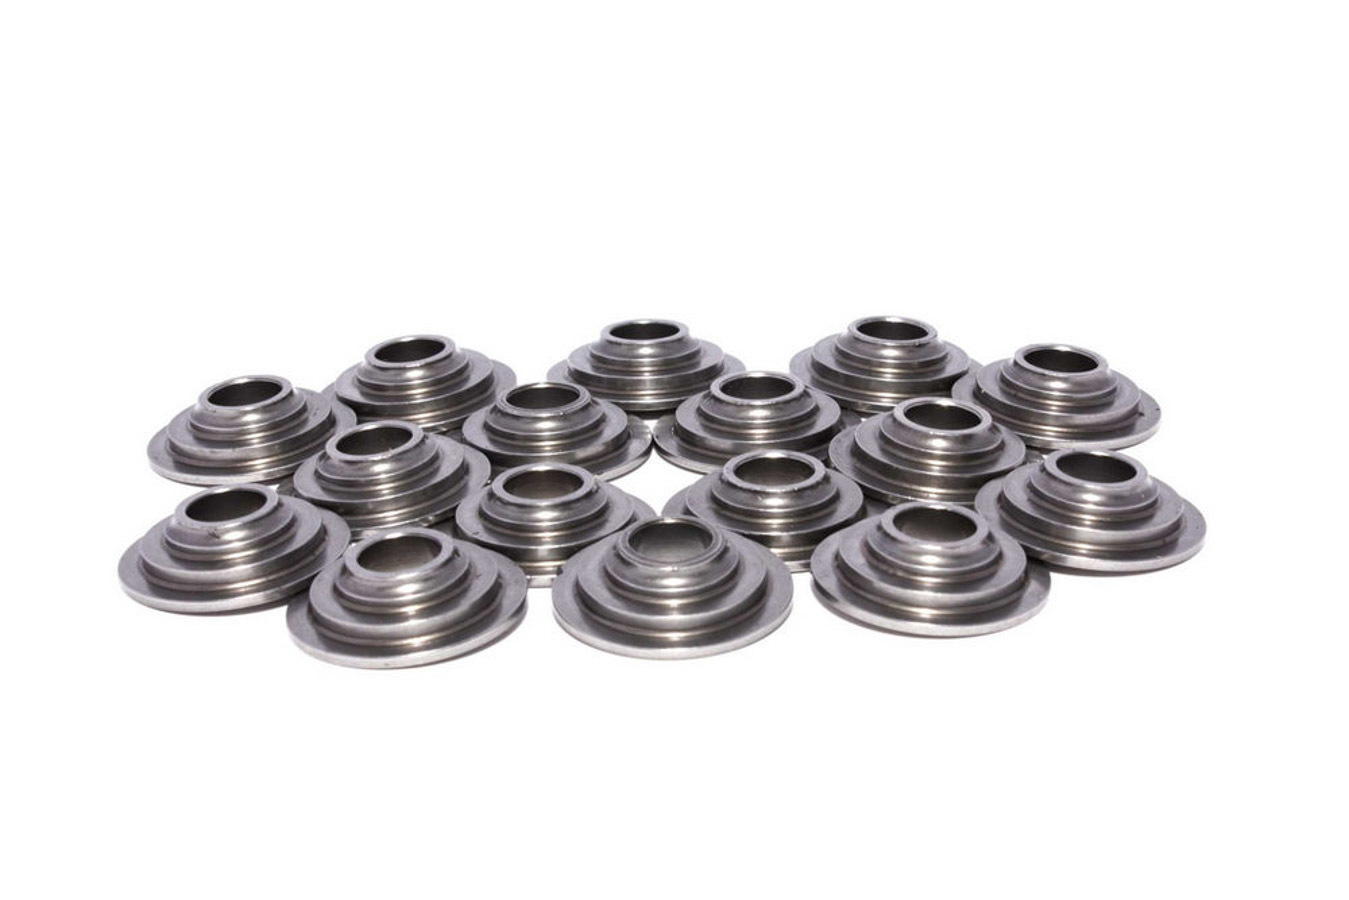 Comp Cams 1777-16 Valve Spring Retainer, 7 Degree, 0.646 in OD Step, 1.290 in Single Spring, Steel, Set of 16